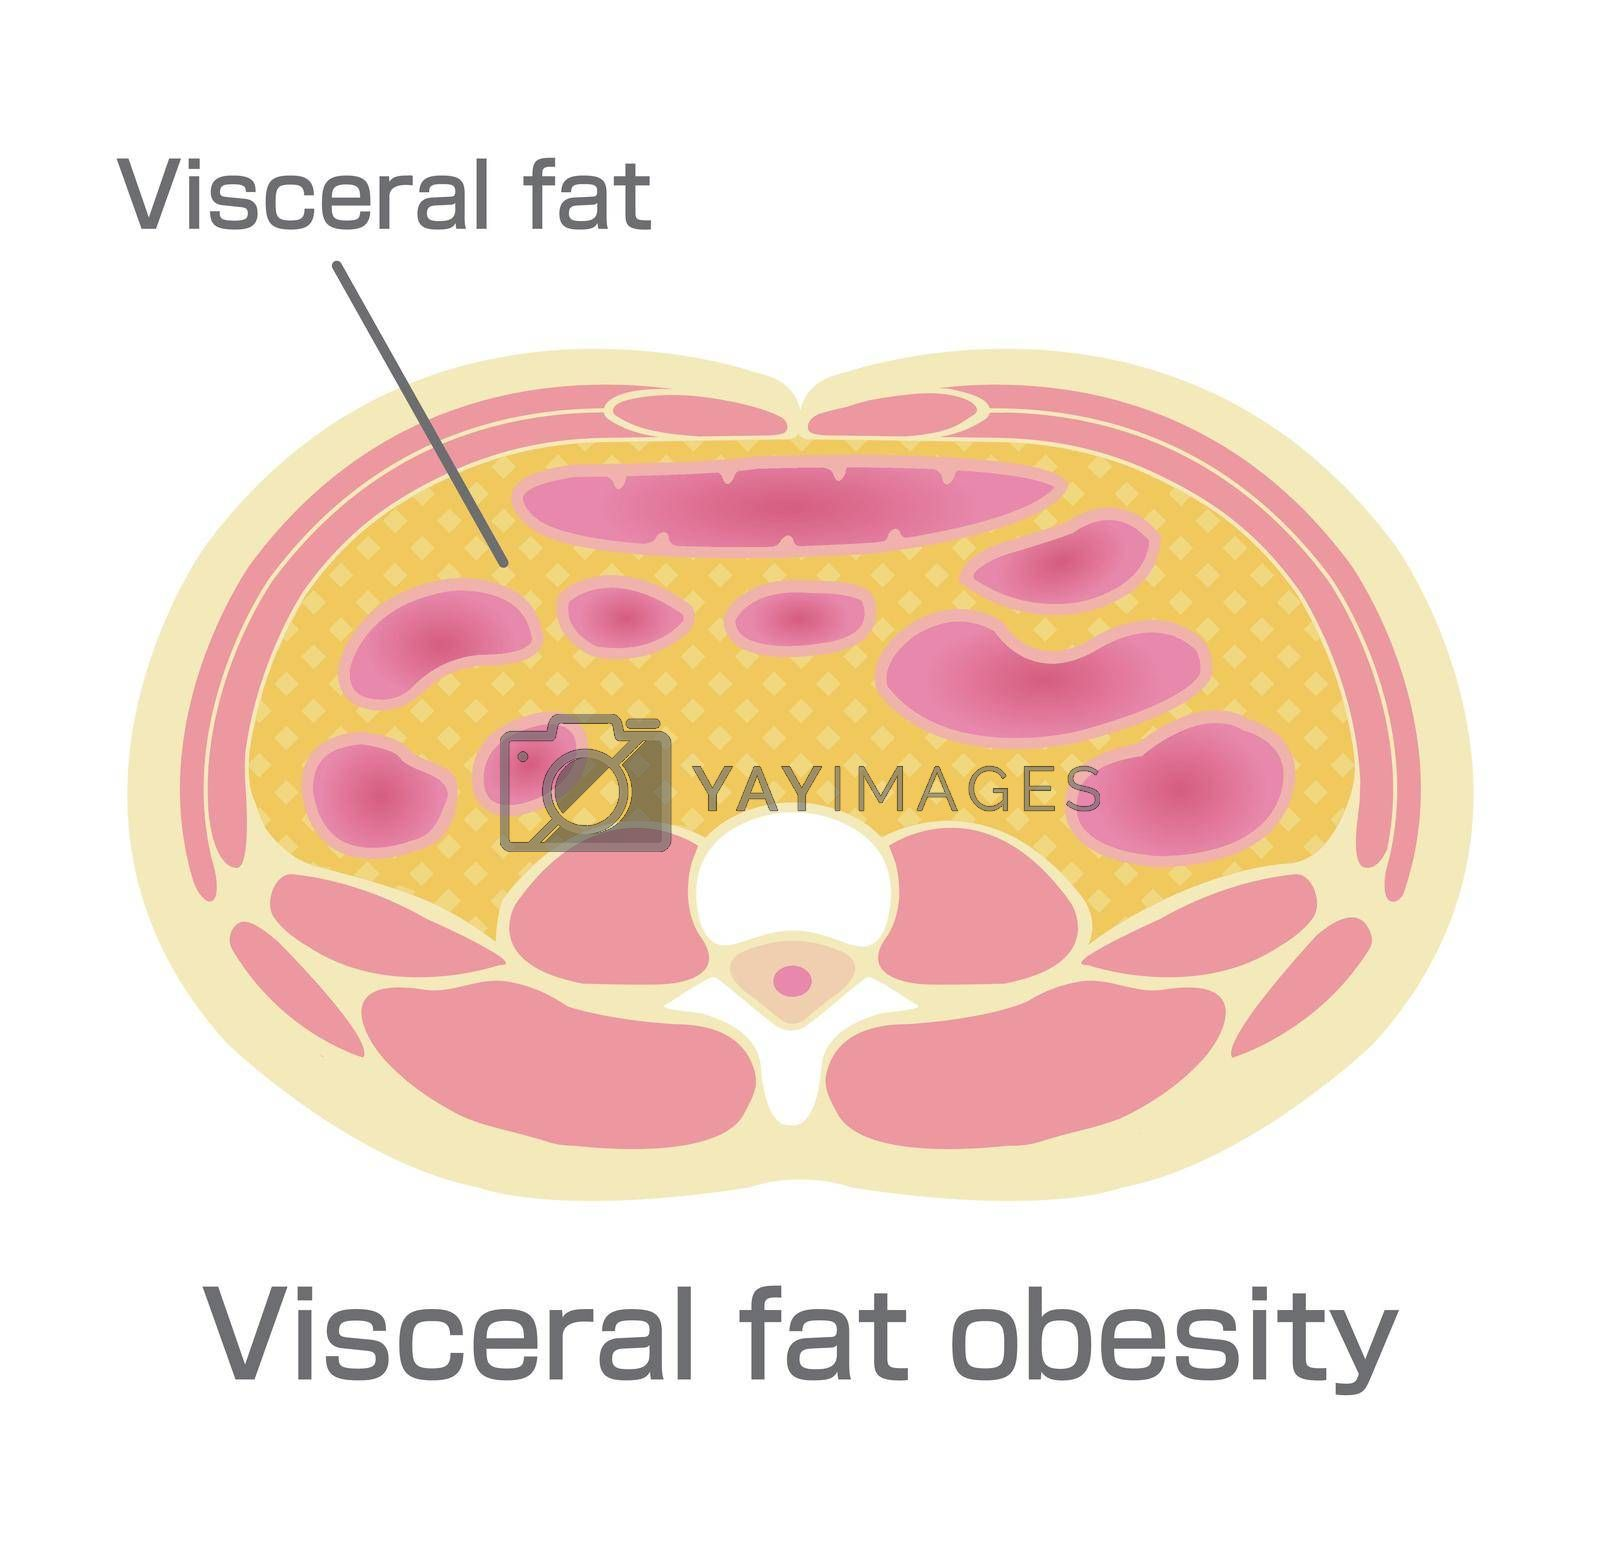 Type of obesity illustration (Japanese) . Abdominal sectional View (visceral fat )